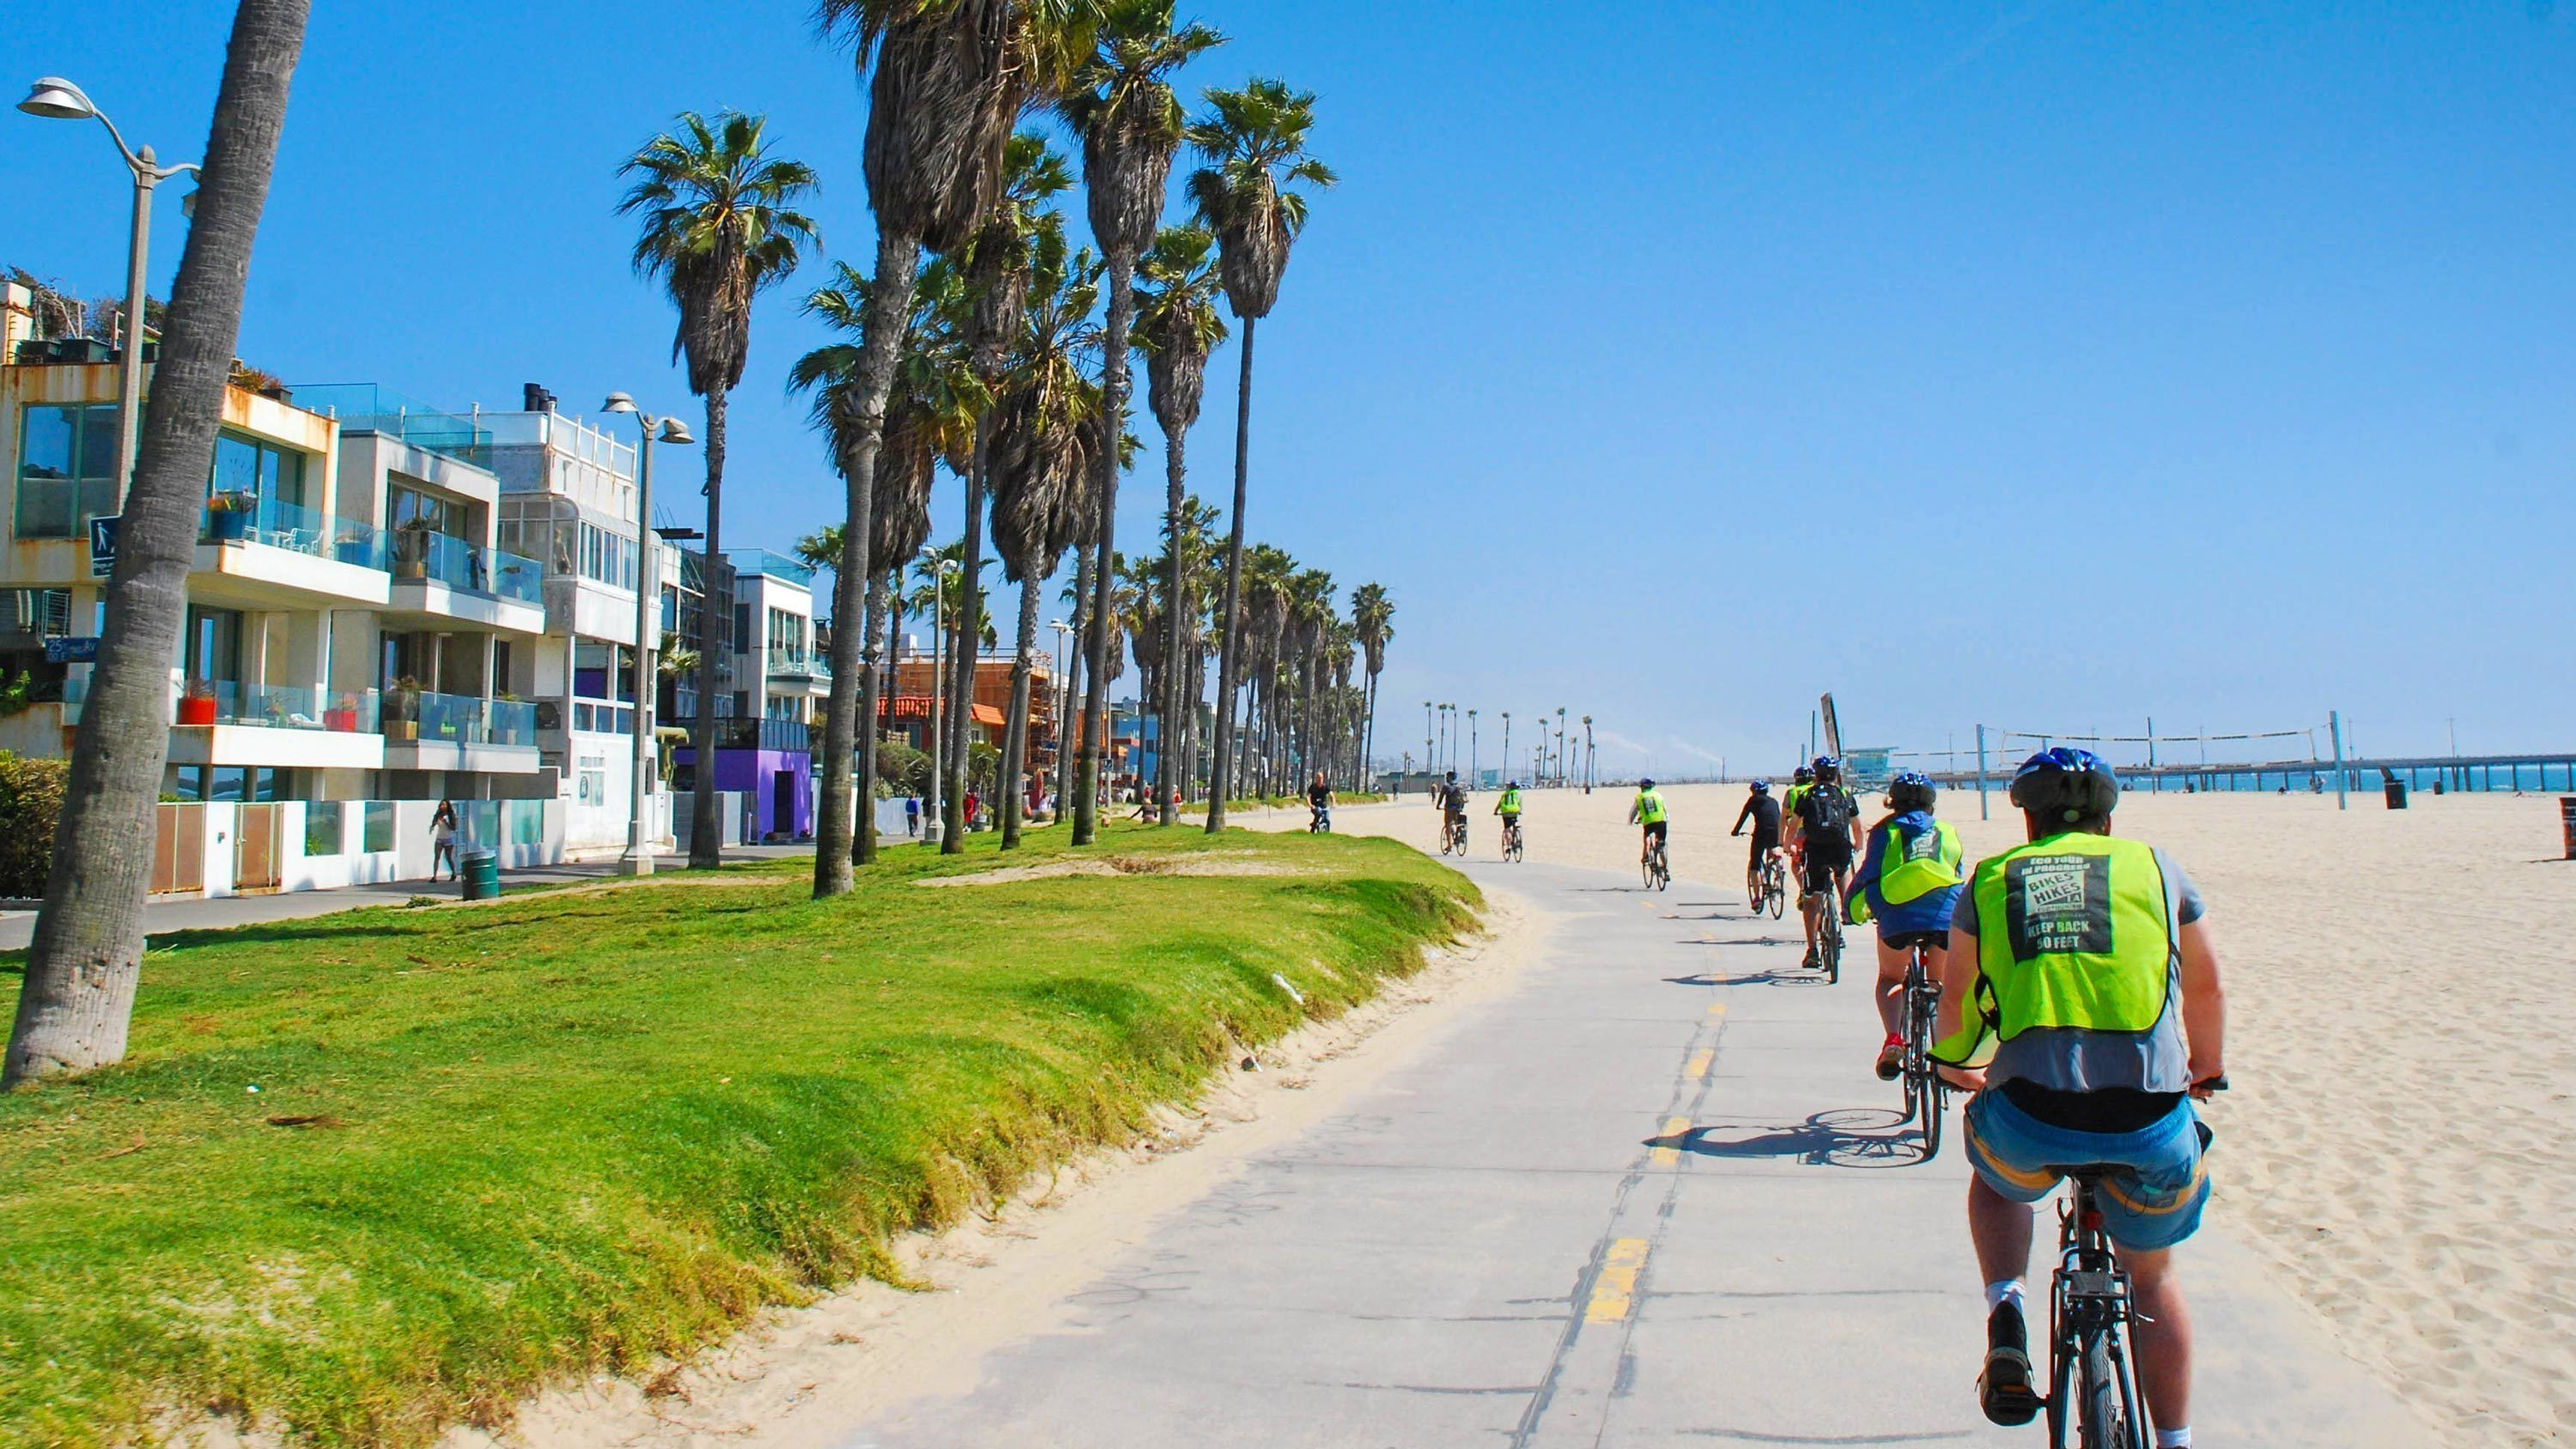 LA in a Day Bicycle Tour with Roundtrip Transfer